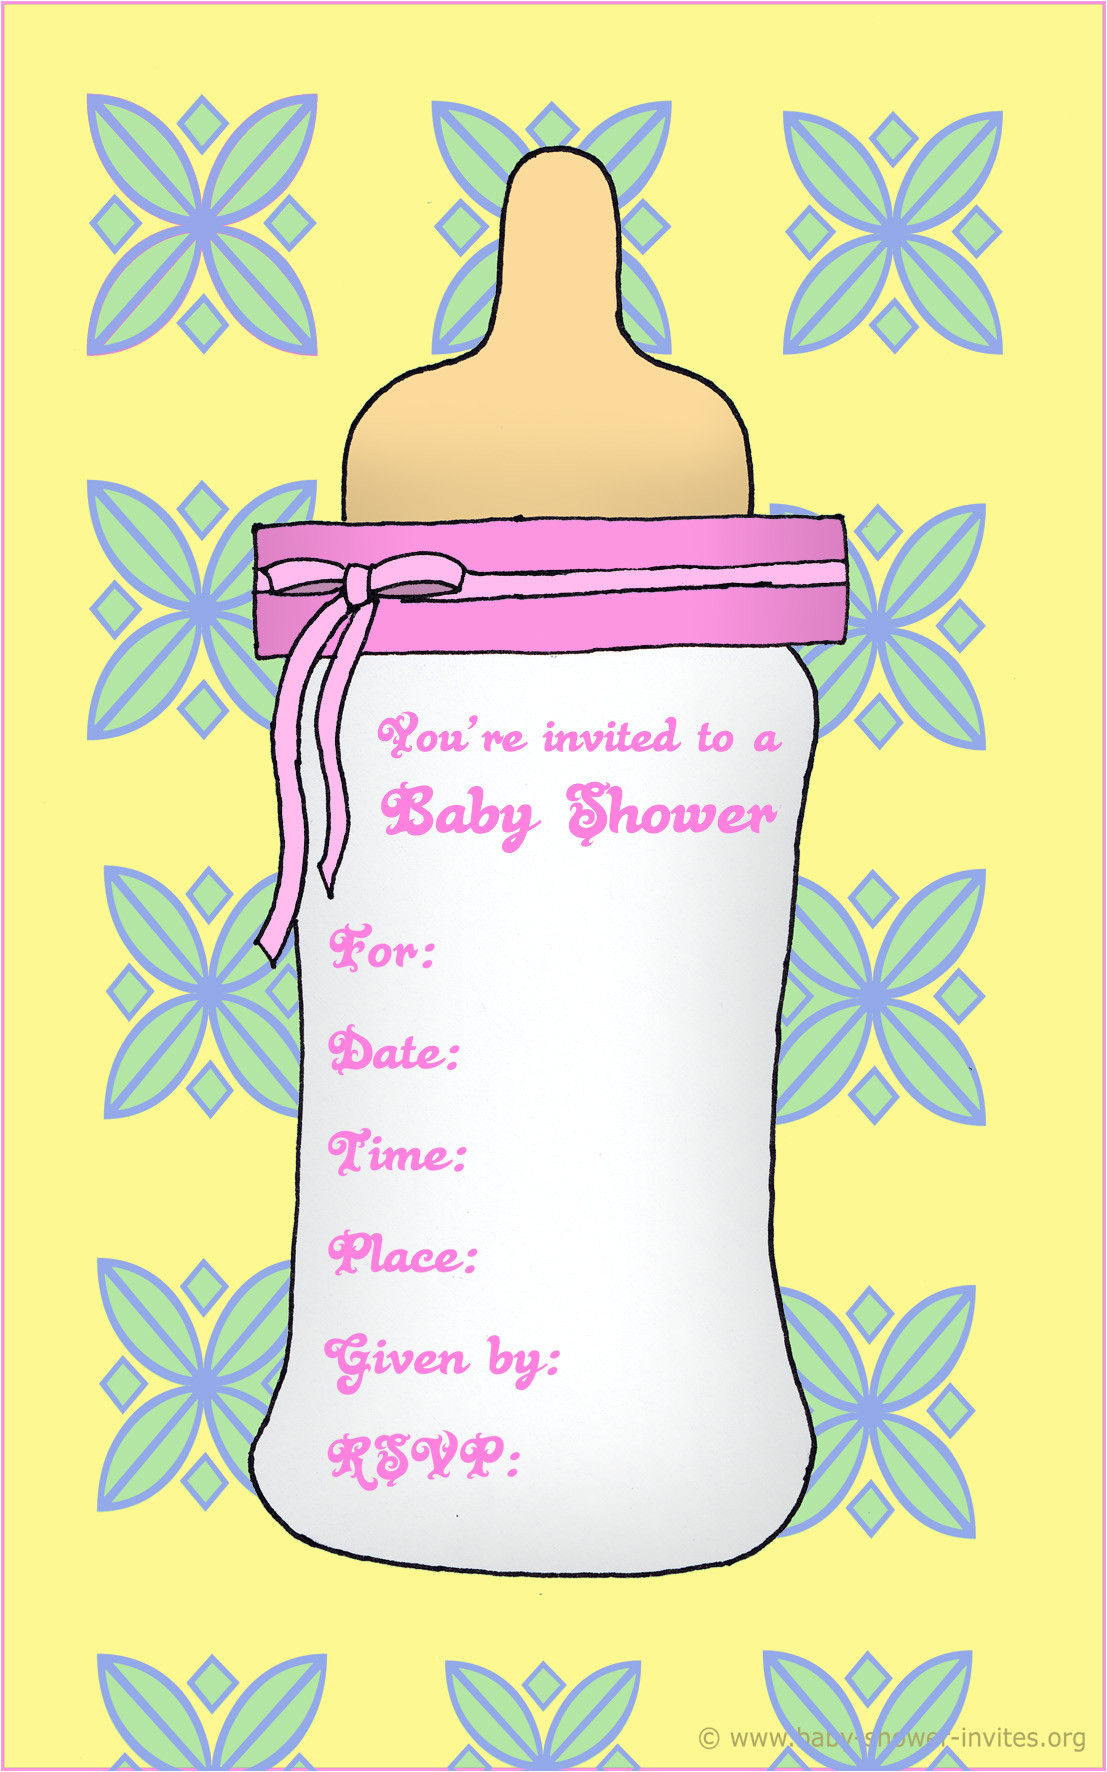 Baby Shower Invitations with Photo Template Free Printable Baby Bottle Baby Shower Invitation Template